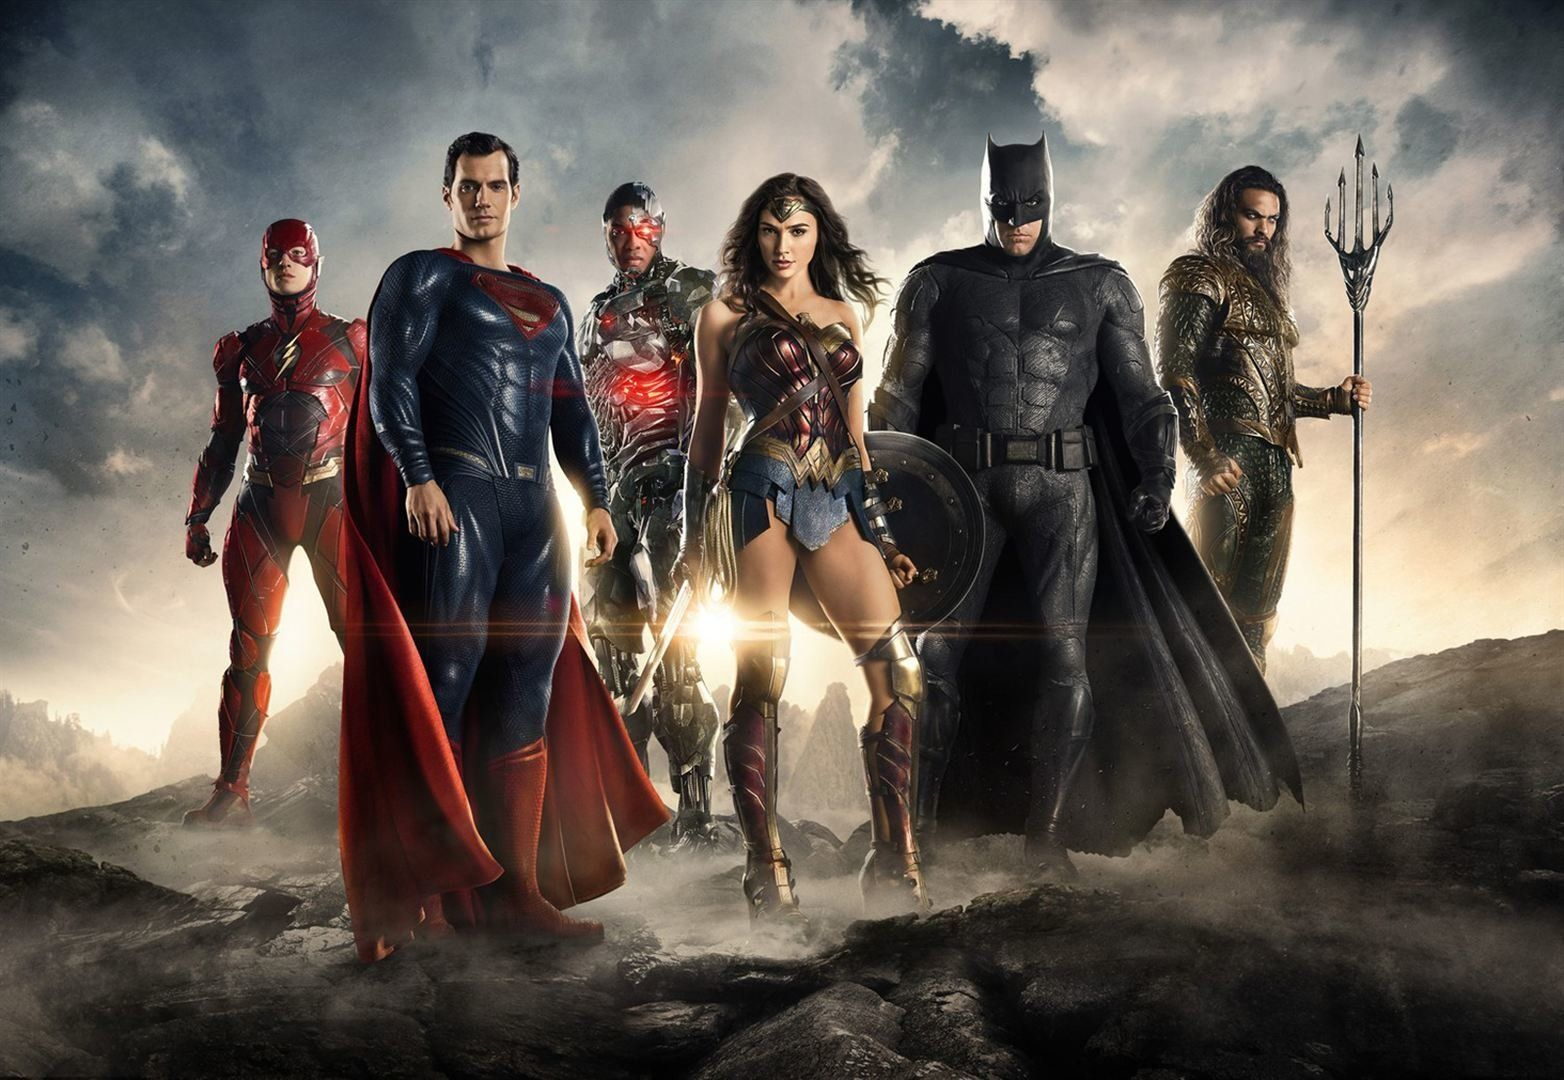 Why Marvel Films Are Better Than DC Films, According To This